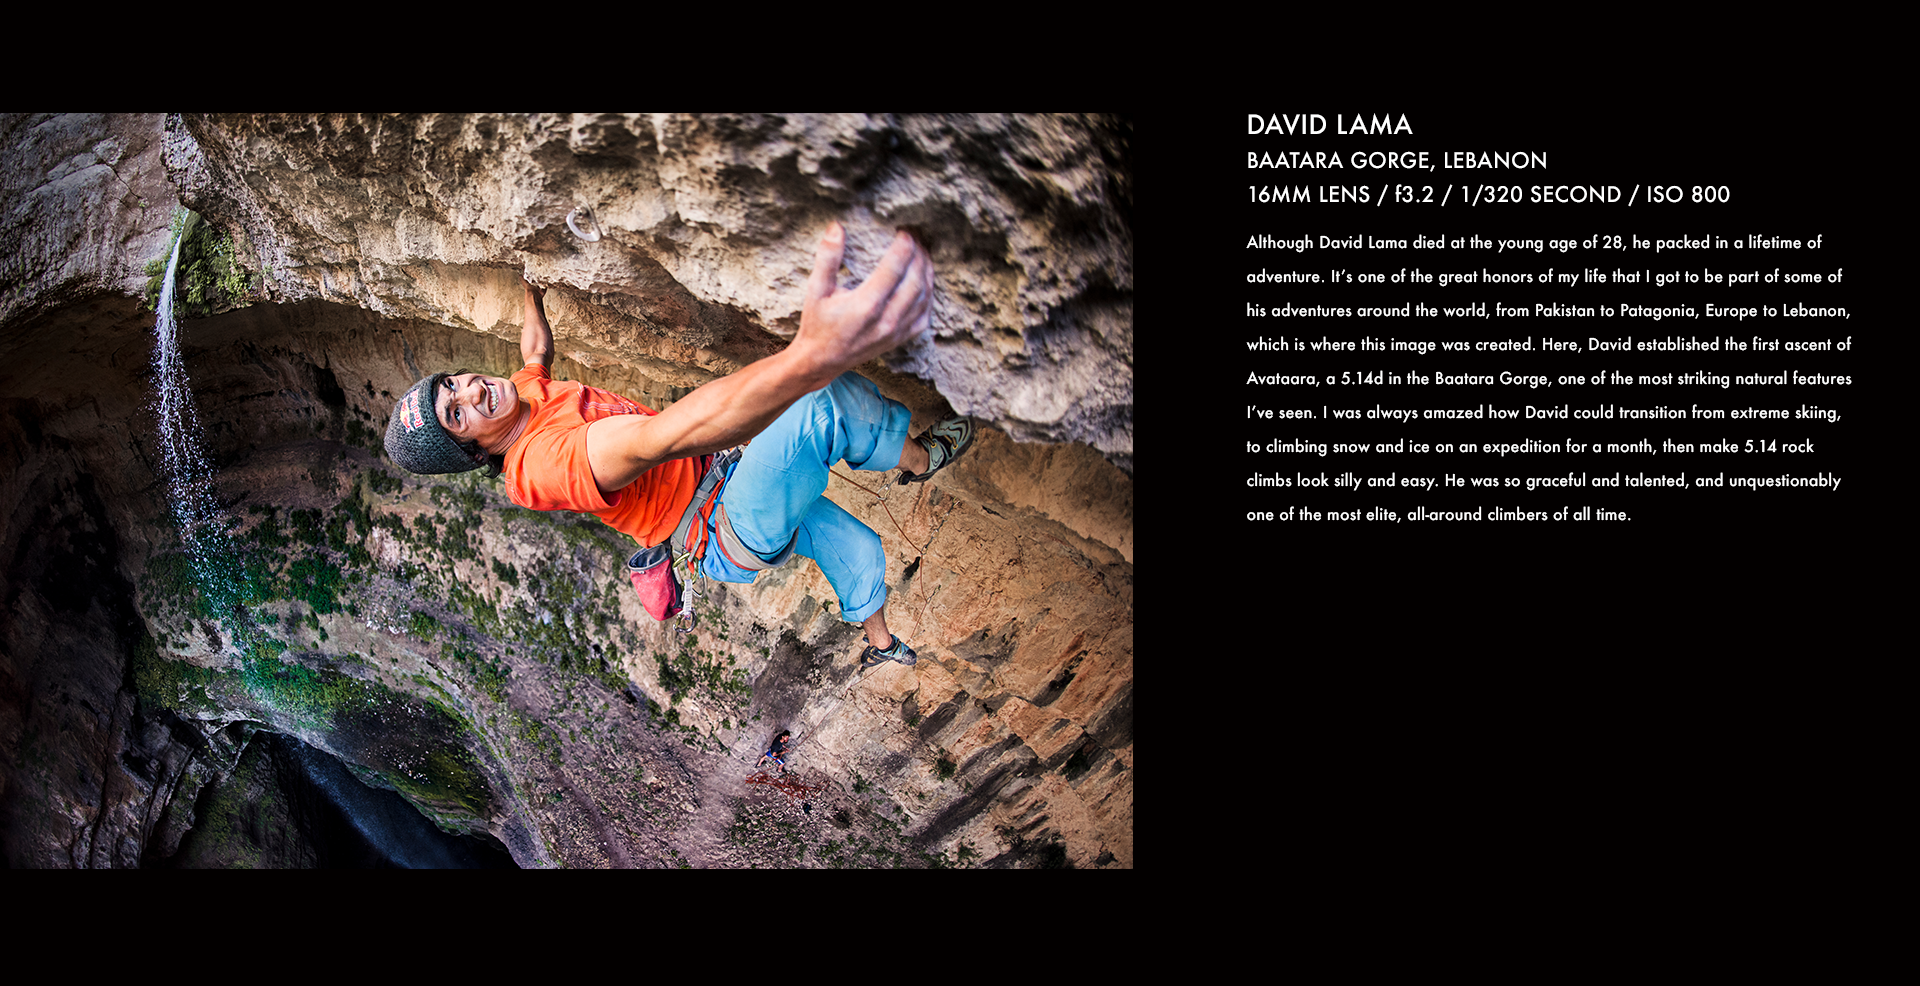 David Lama, Lebanon, climbing, Red Bull, mountain climbing, action sports, stories behind the images, corey rich